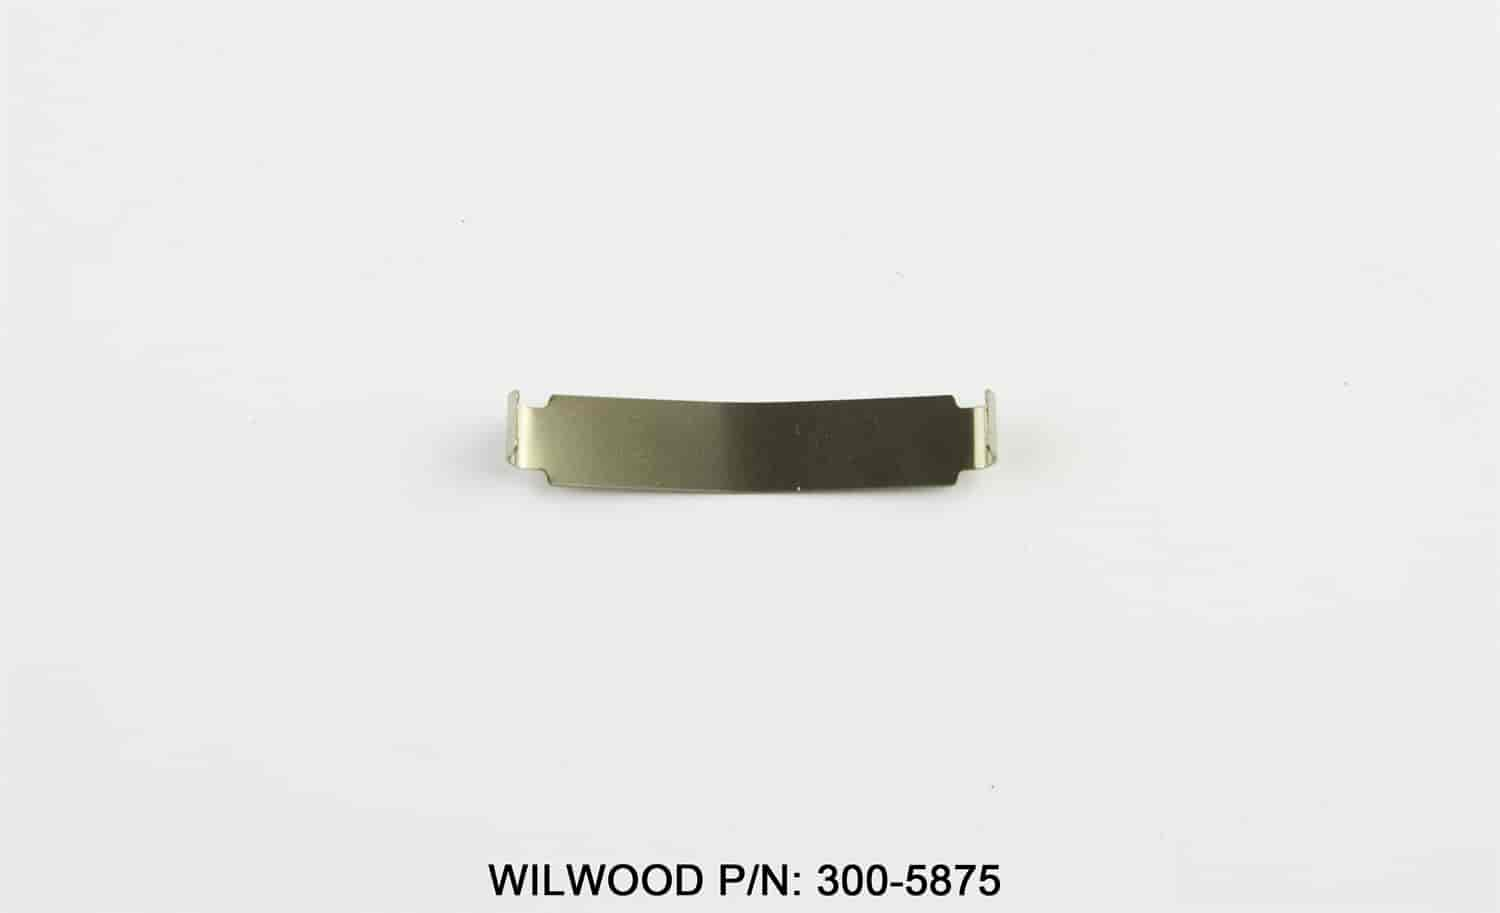 Wilwood 300-5875 - Wilwood Brake Components